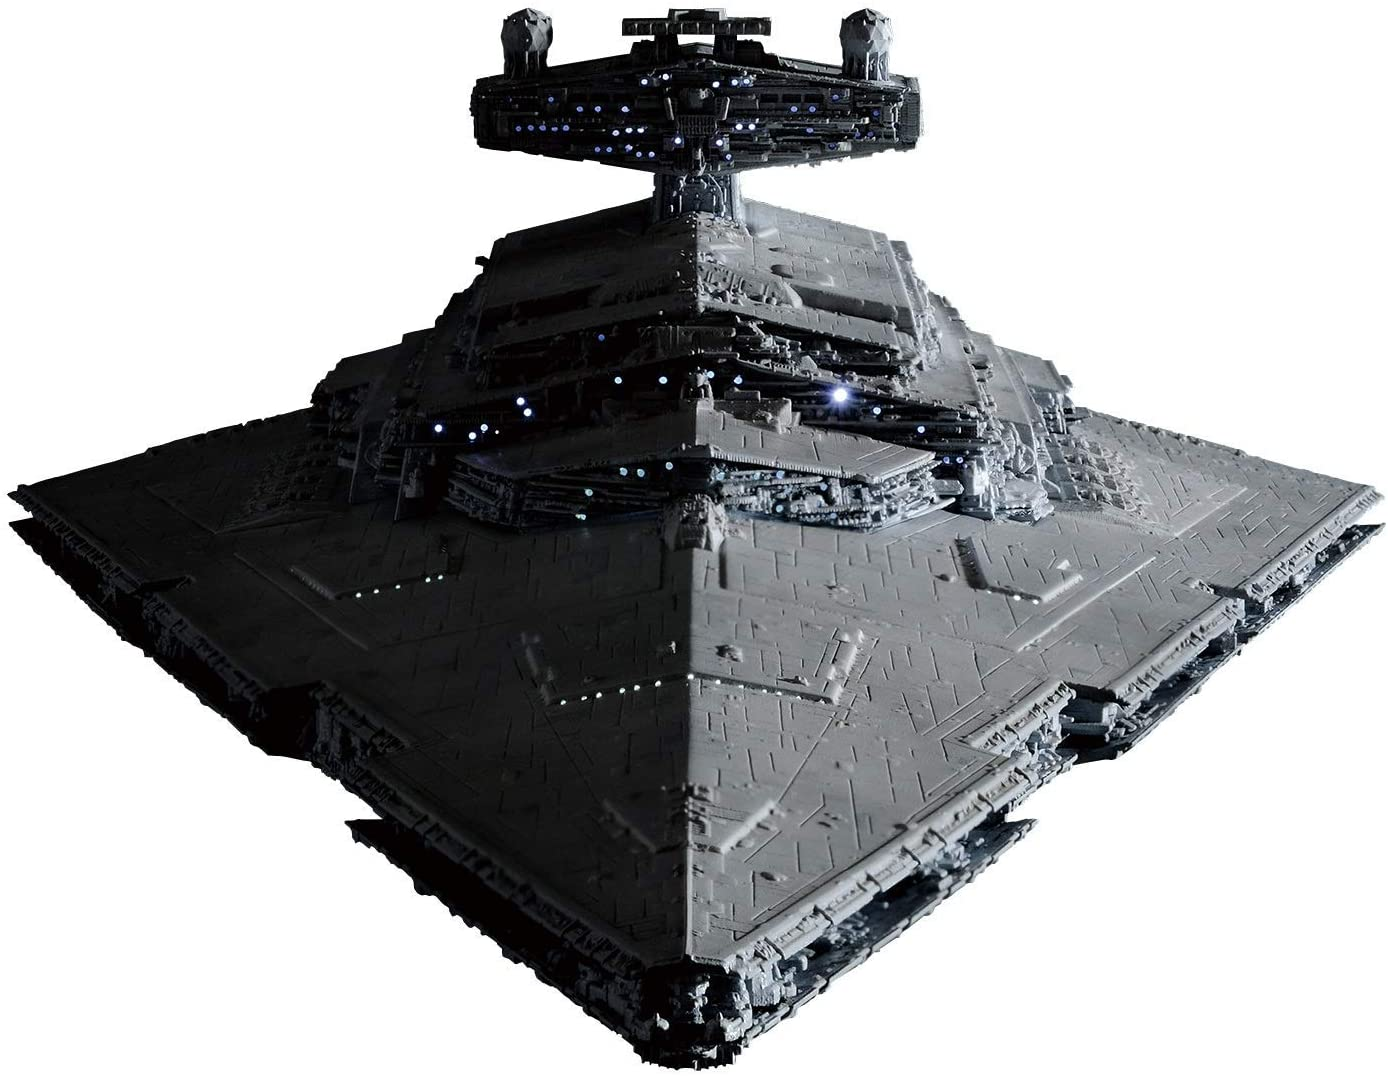 Bandai Spirits Hobby Star Wars 1/5000 Star Destroyer (Lighting Model) Limited Ver. Star Wars, Grey, Model:-